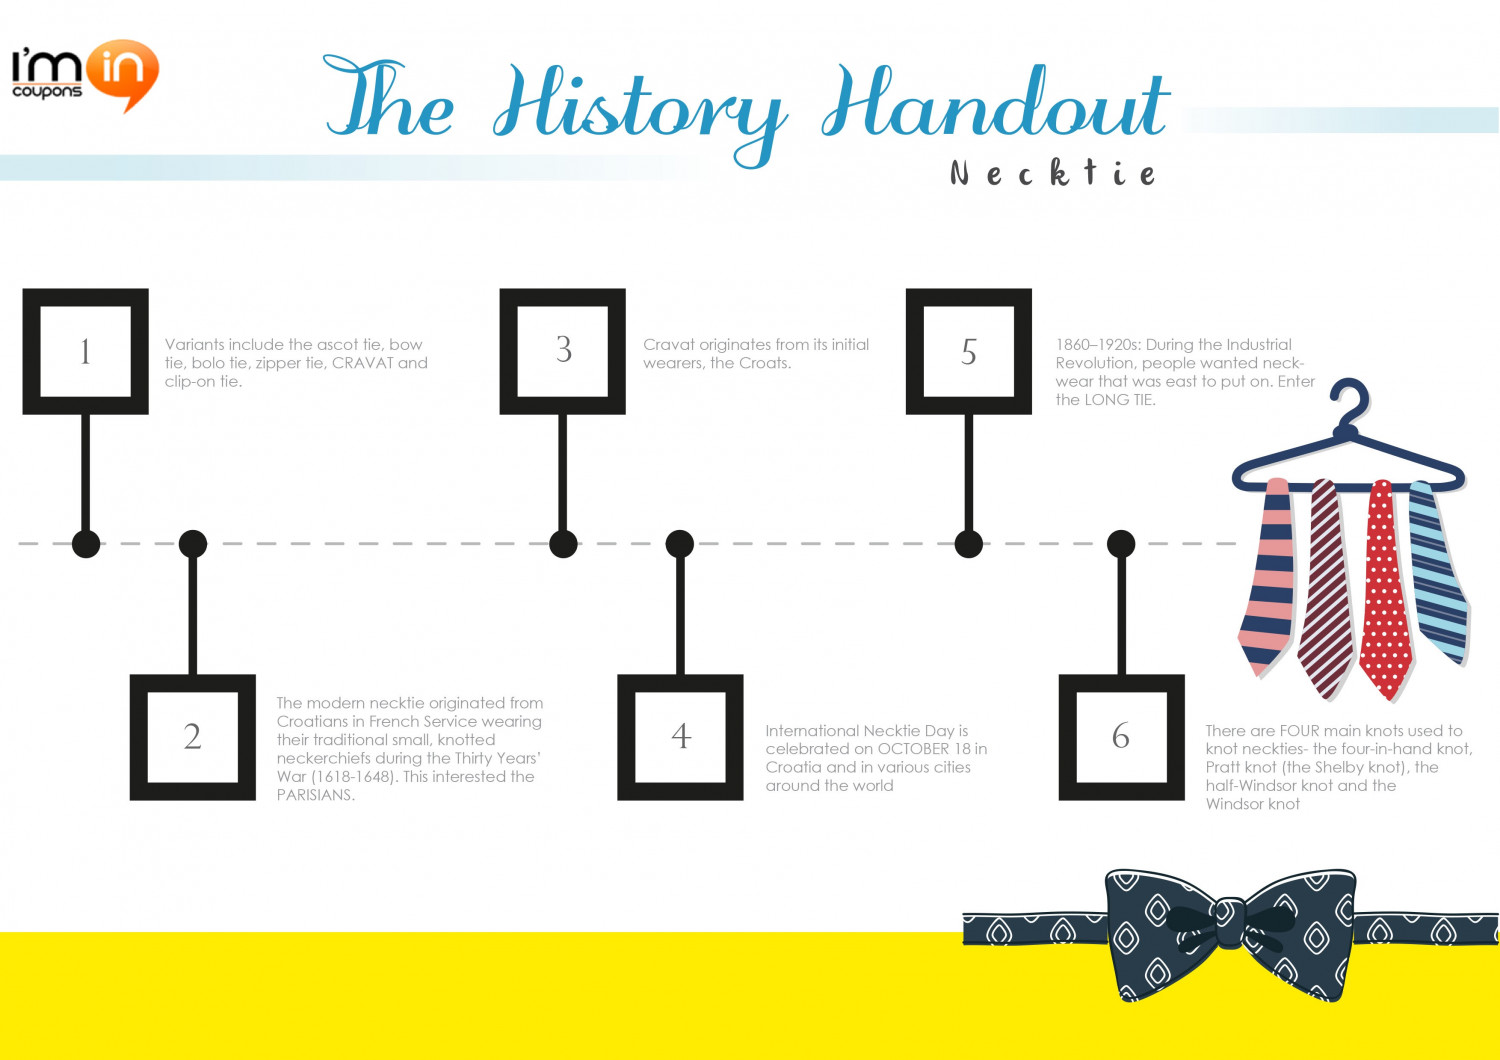 The History Handout - Necktie Infographic